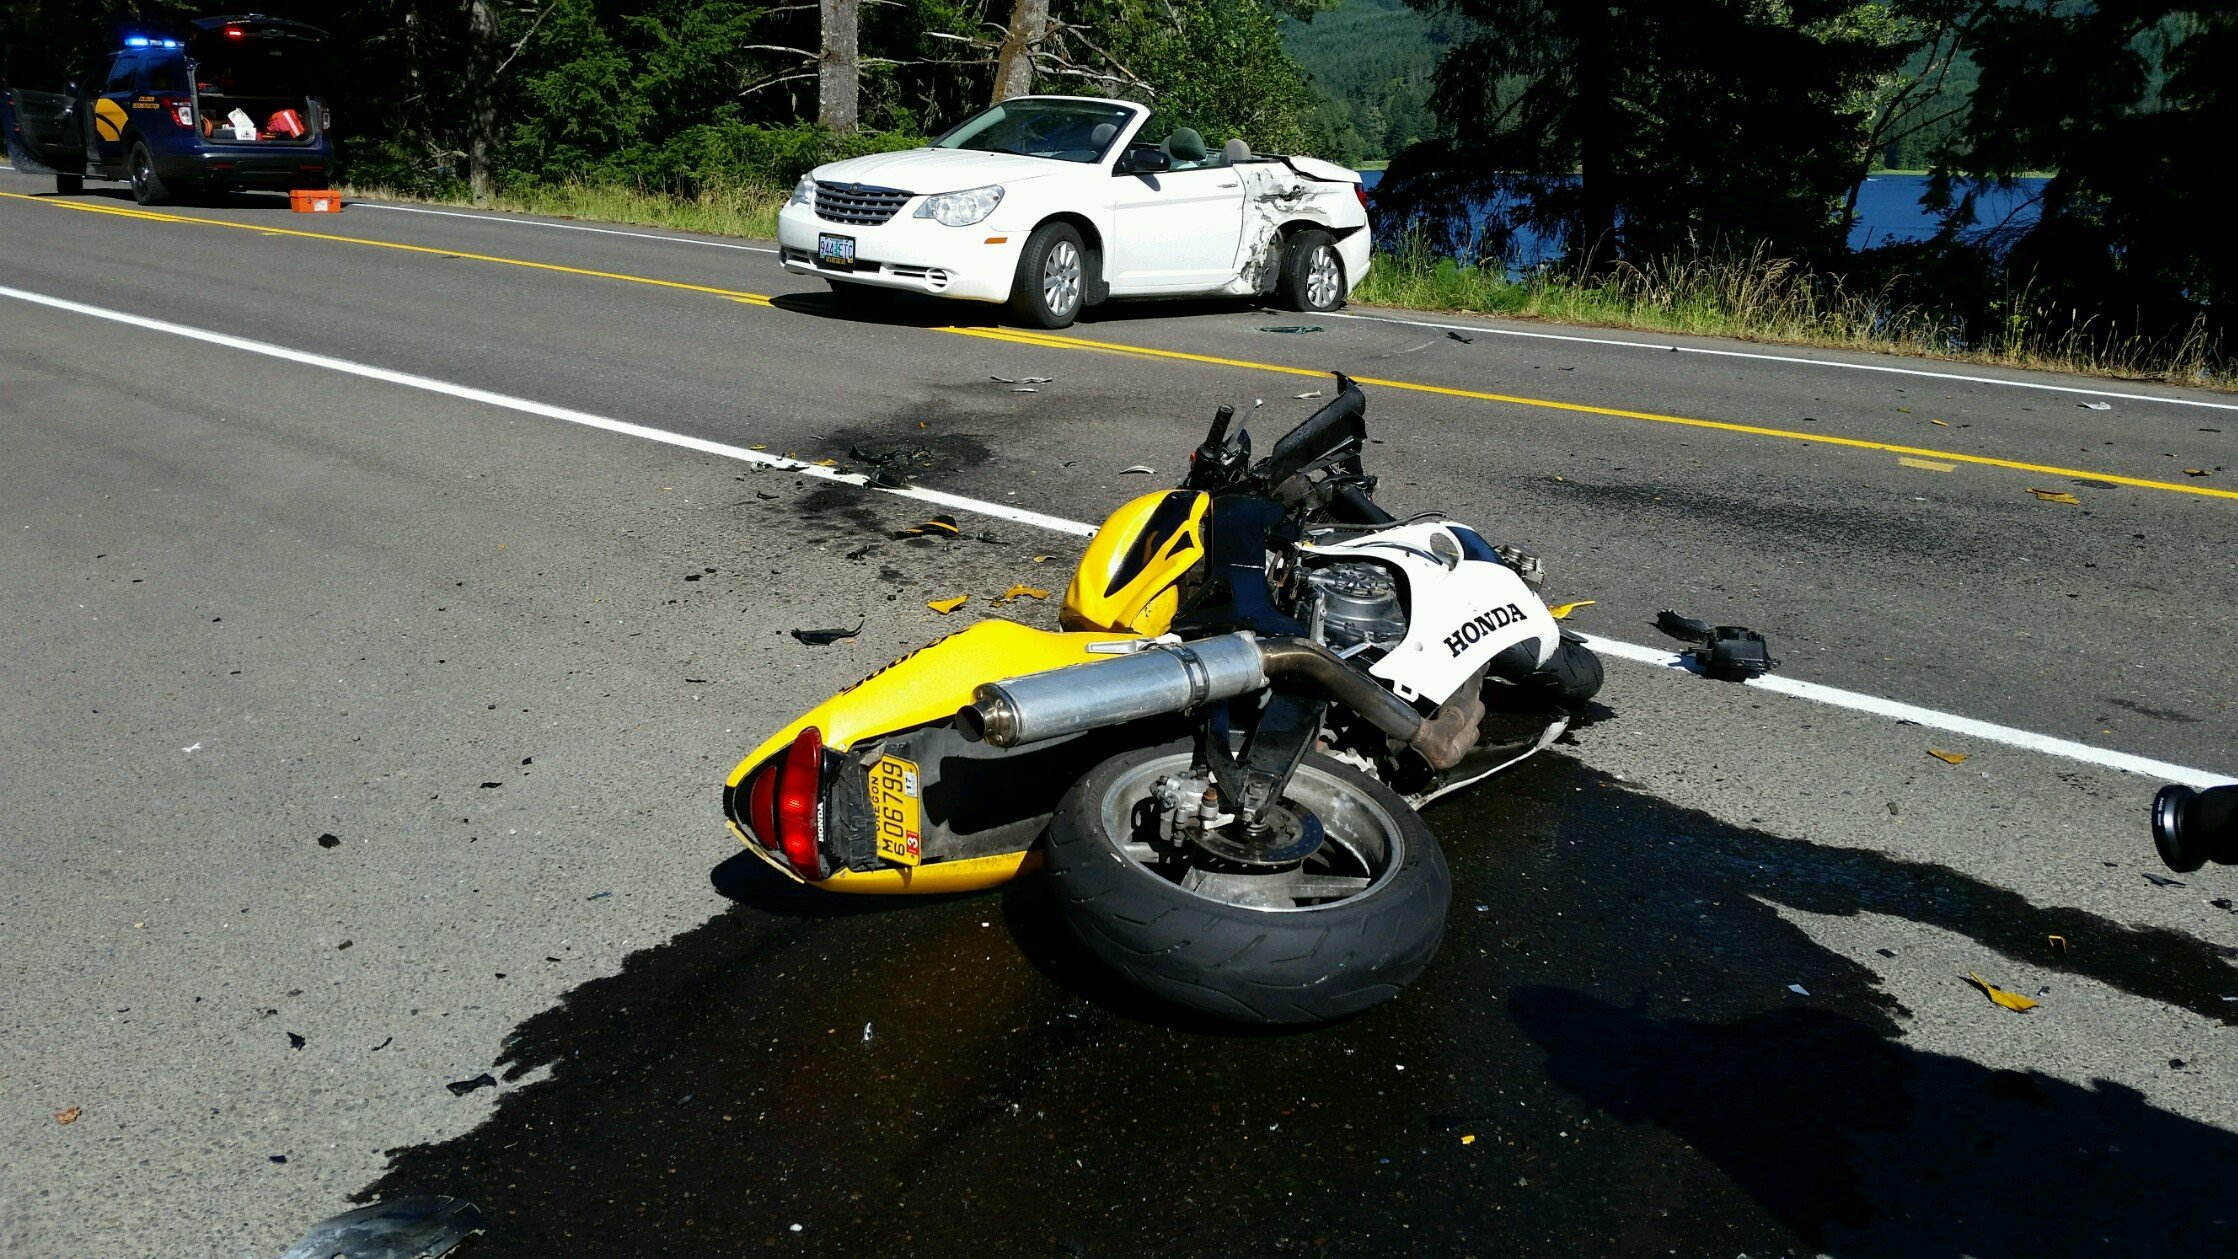 Motorcyclist Killed In Crash Near Cottage Grove Kptv